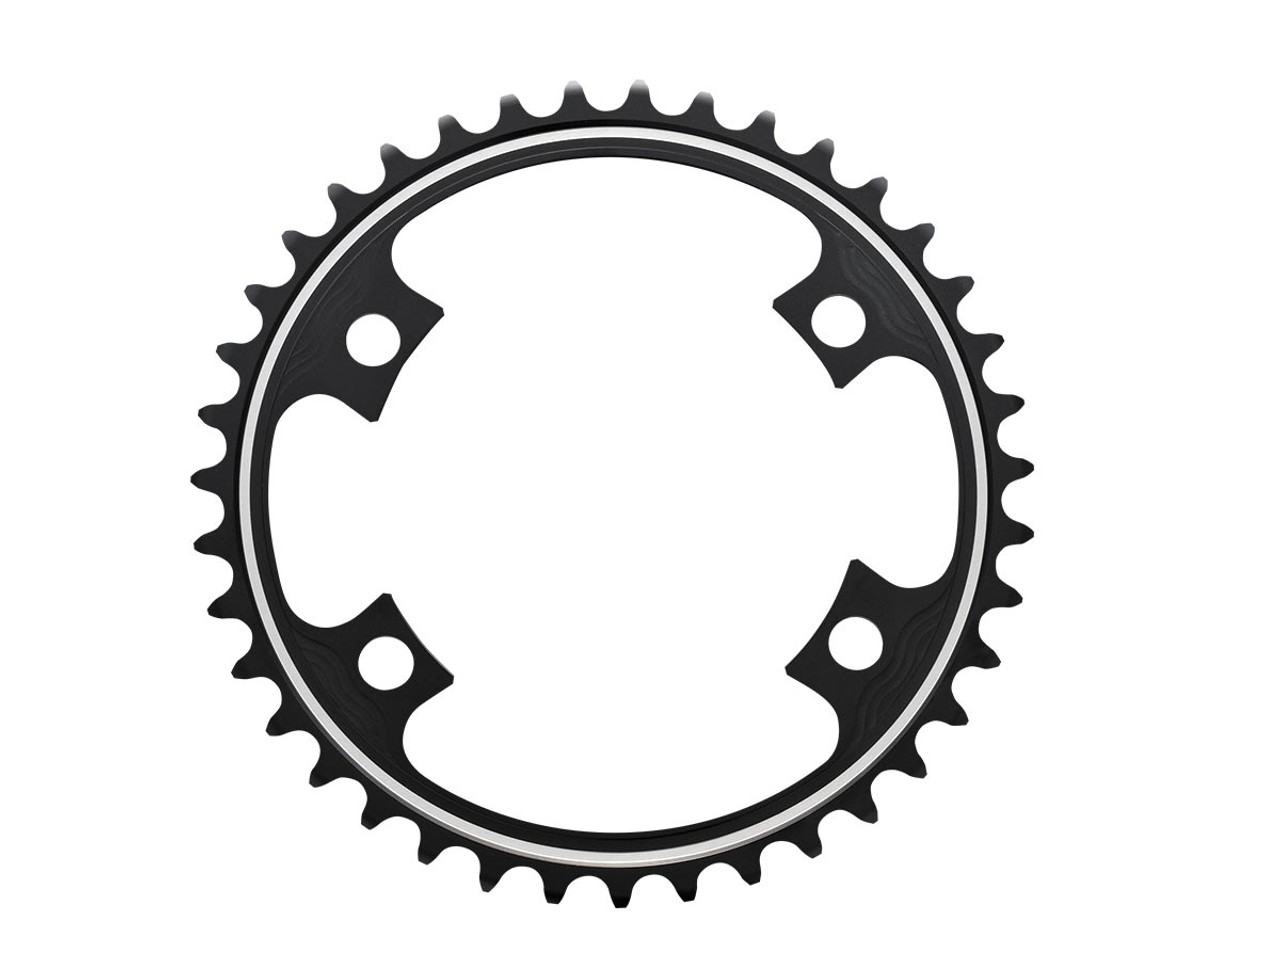 Dura Ace 9000 >> Shimano Dura Ace 9000 11 Speed Inner Chainring